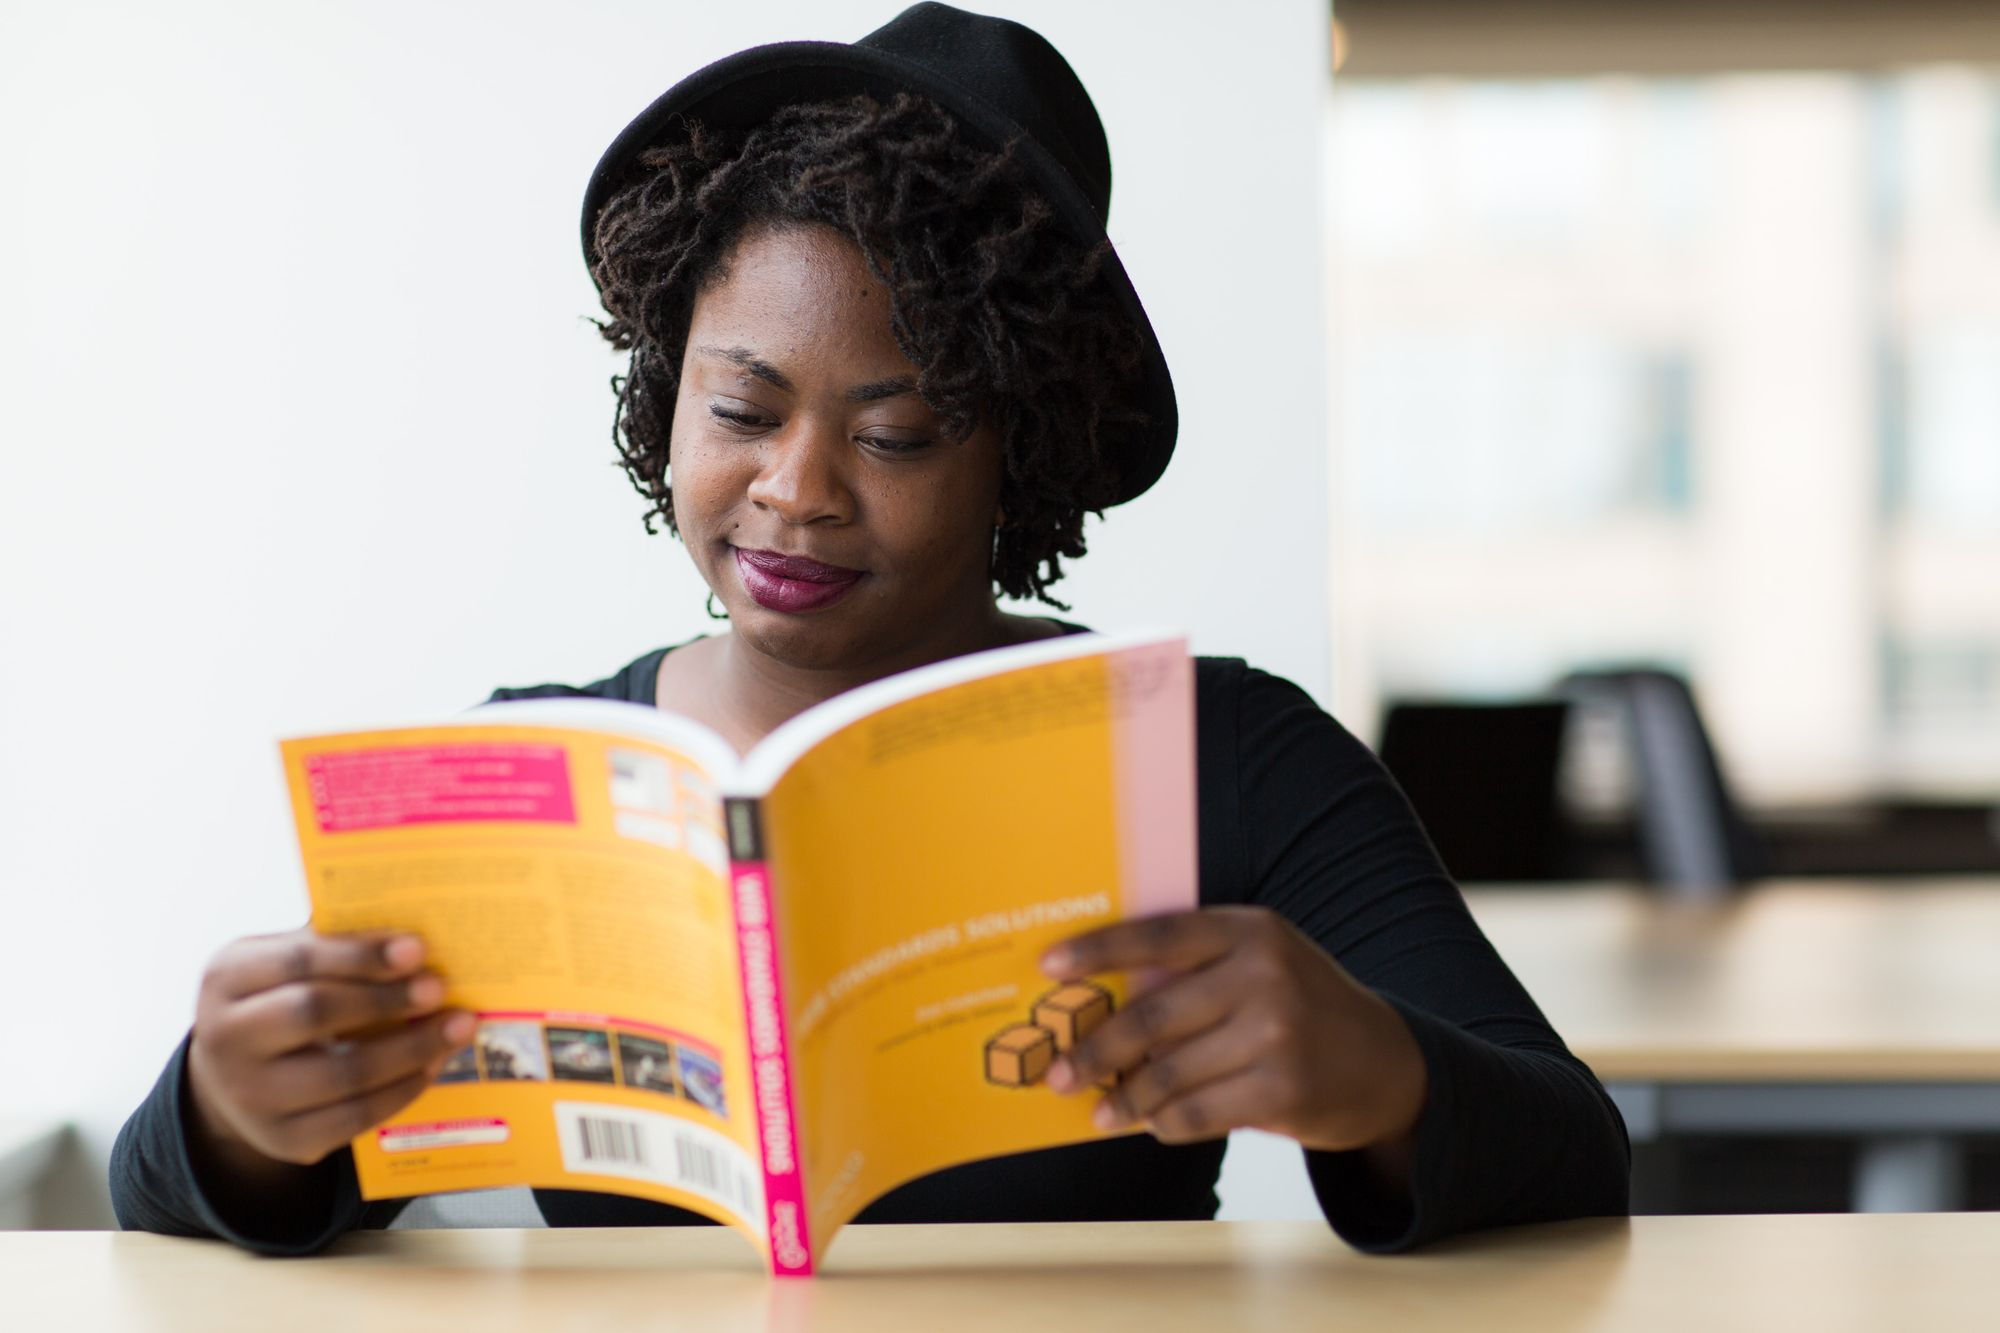 Lady with hat reading book studying for test